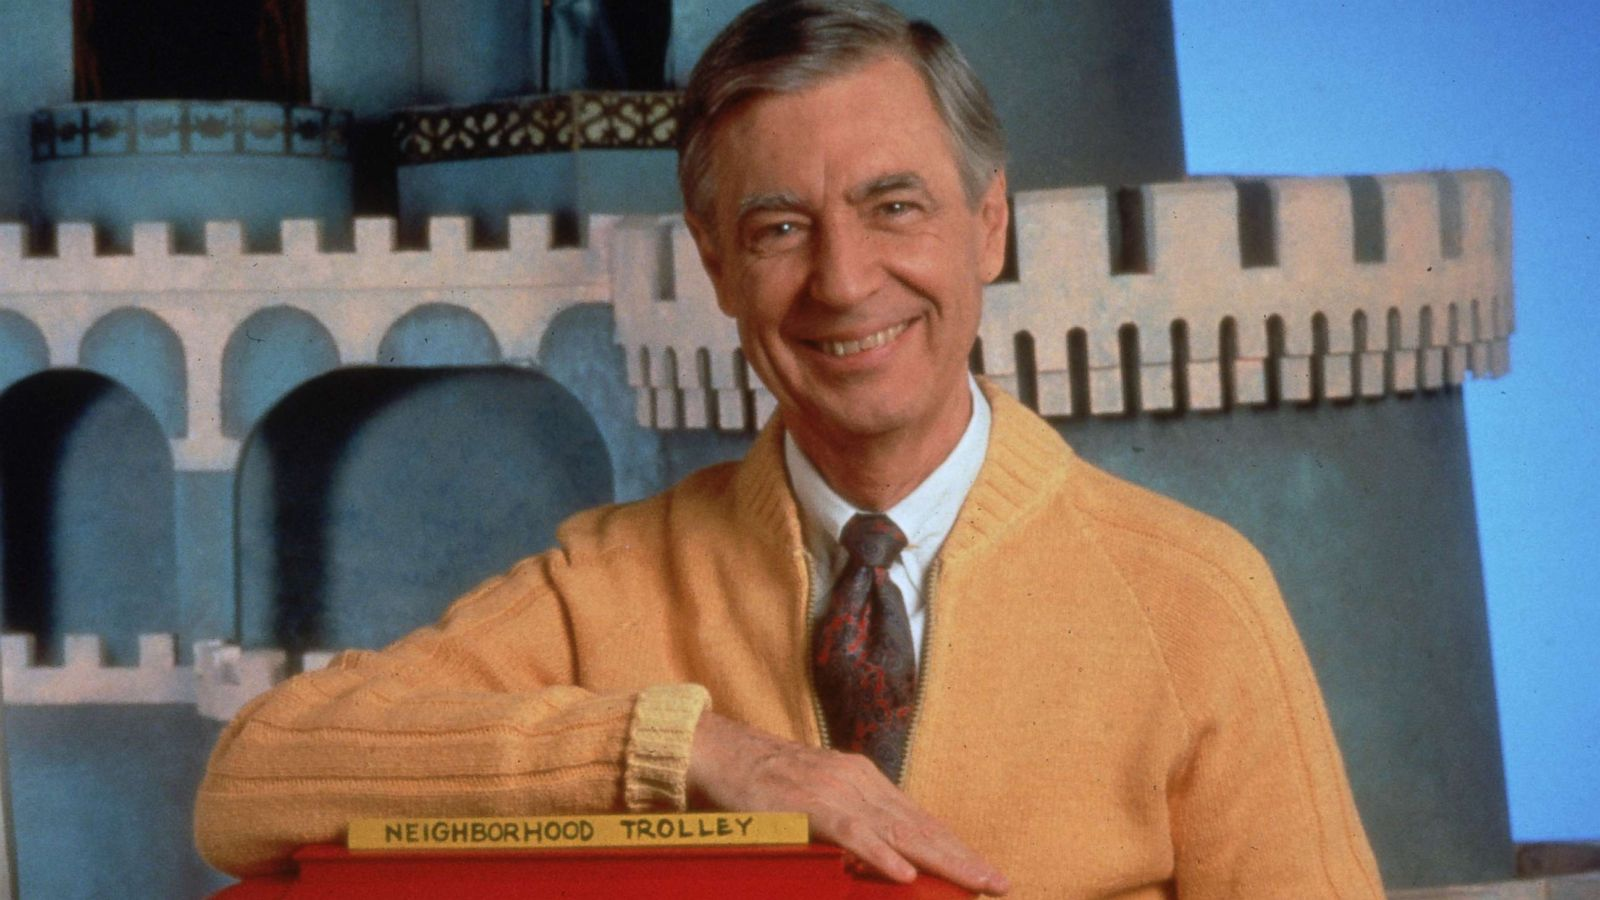 Won T You Be My Neighbor Trailer Reveals Radical Mister Rogers Gma